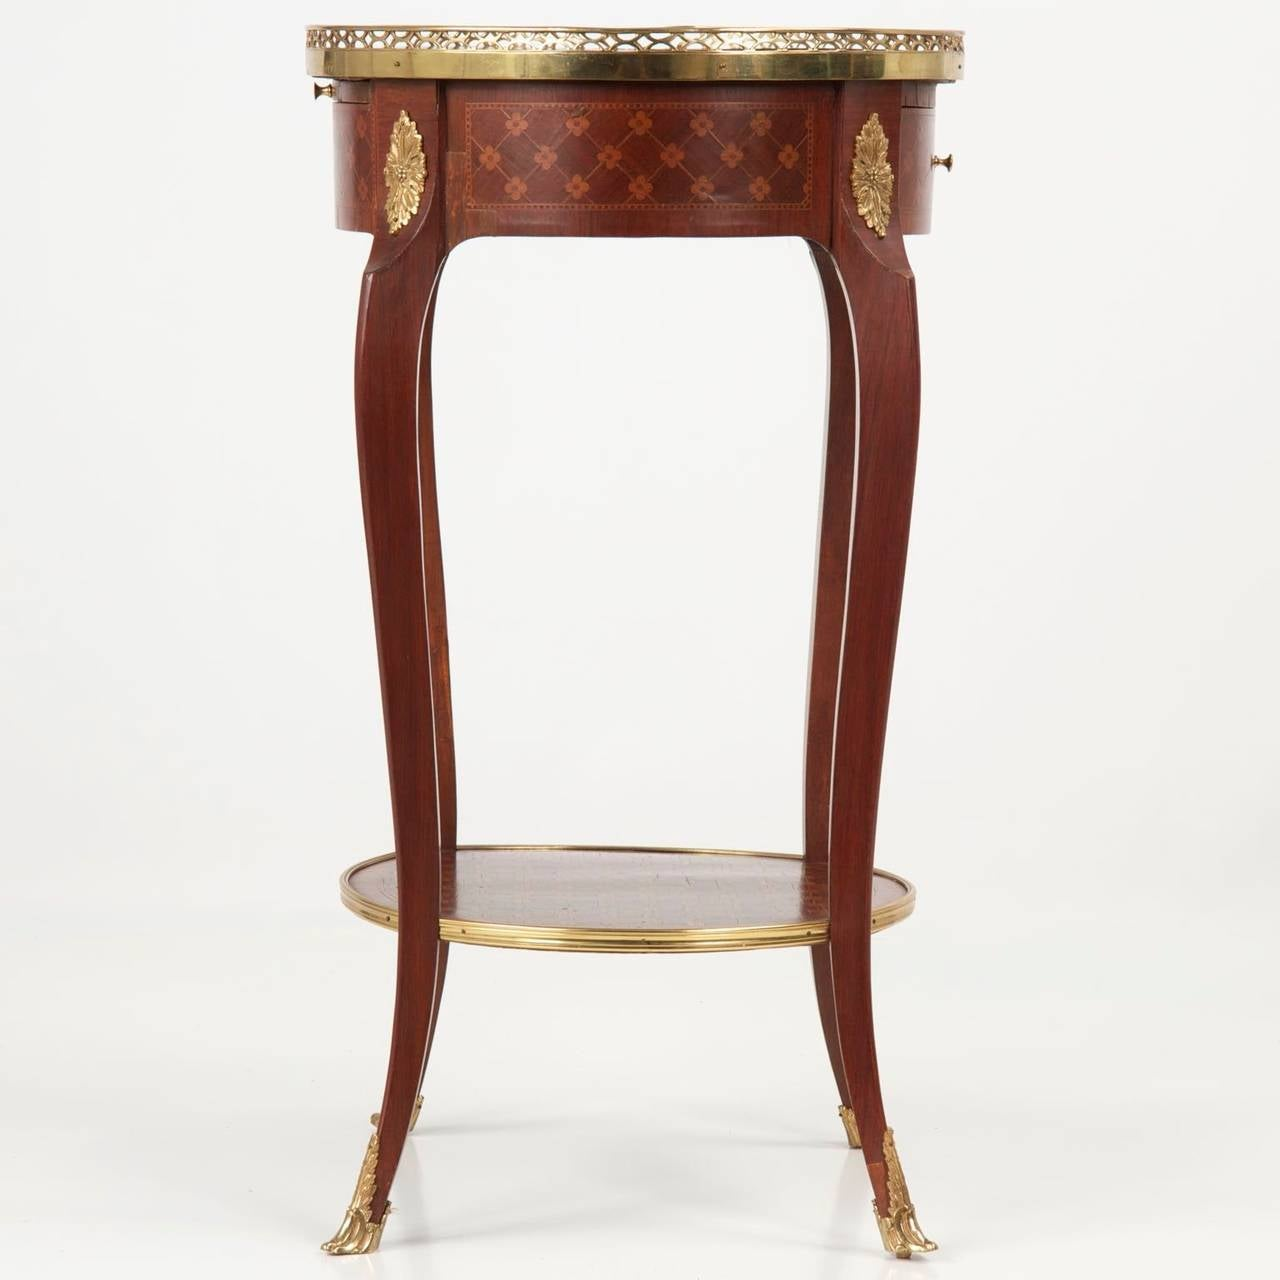 French louis xv style parquetry and ormolu side table 19th century at 1stdibs - Table louis xv ...